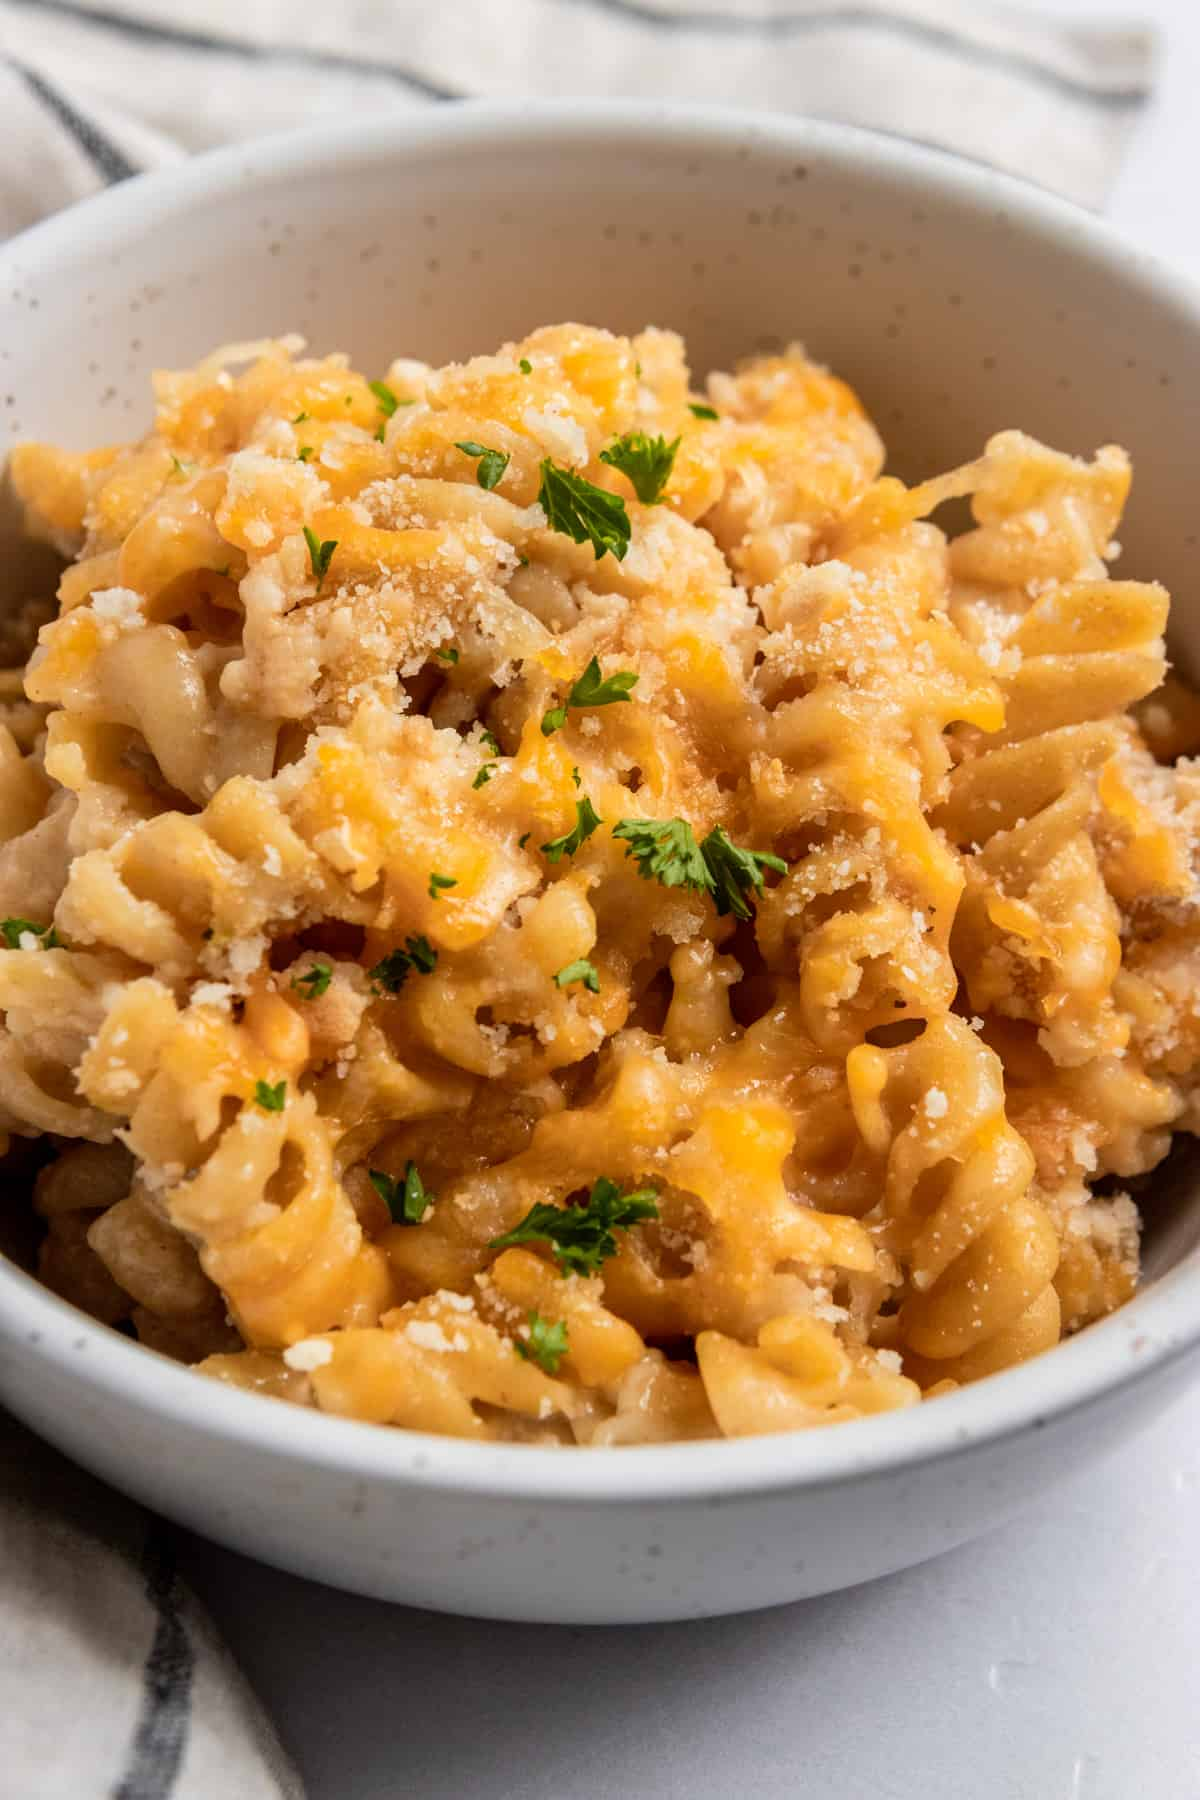 Bowl of macaroni and cheese with breadcrumbs and parsley.